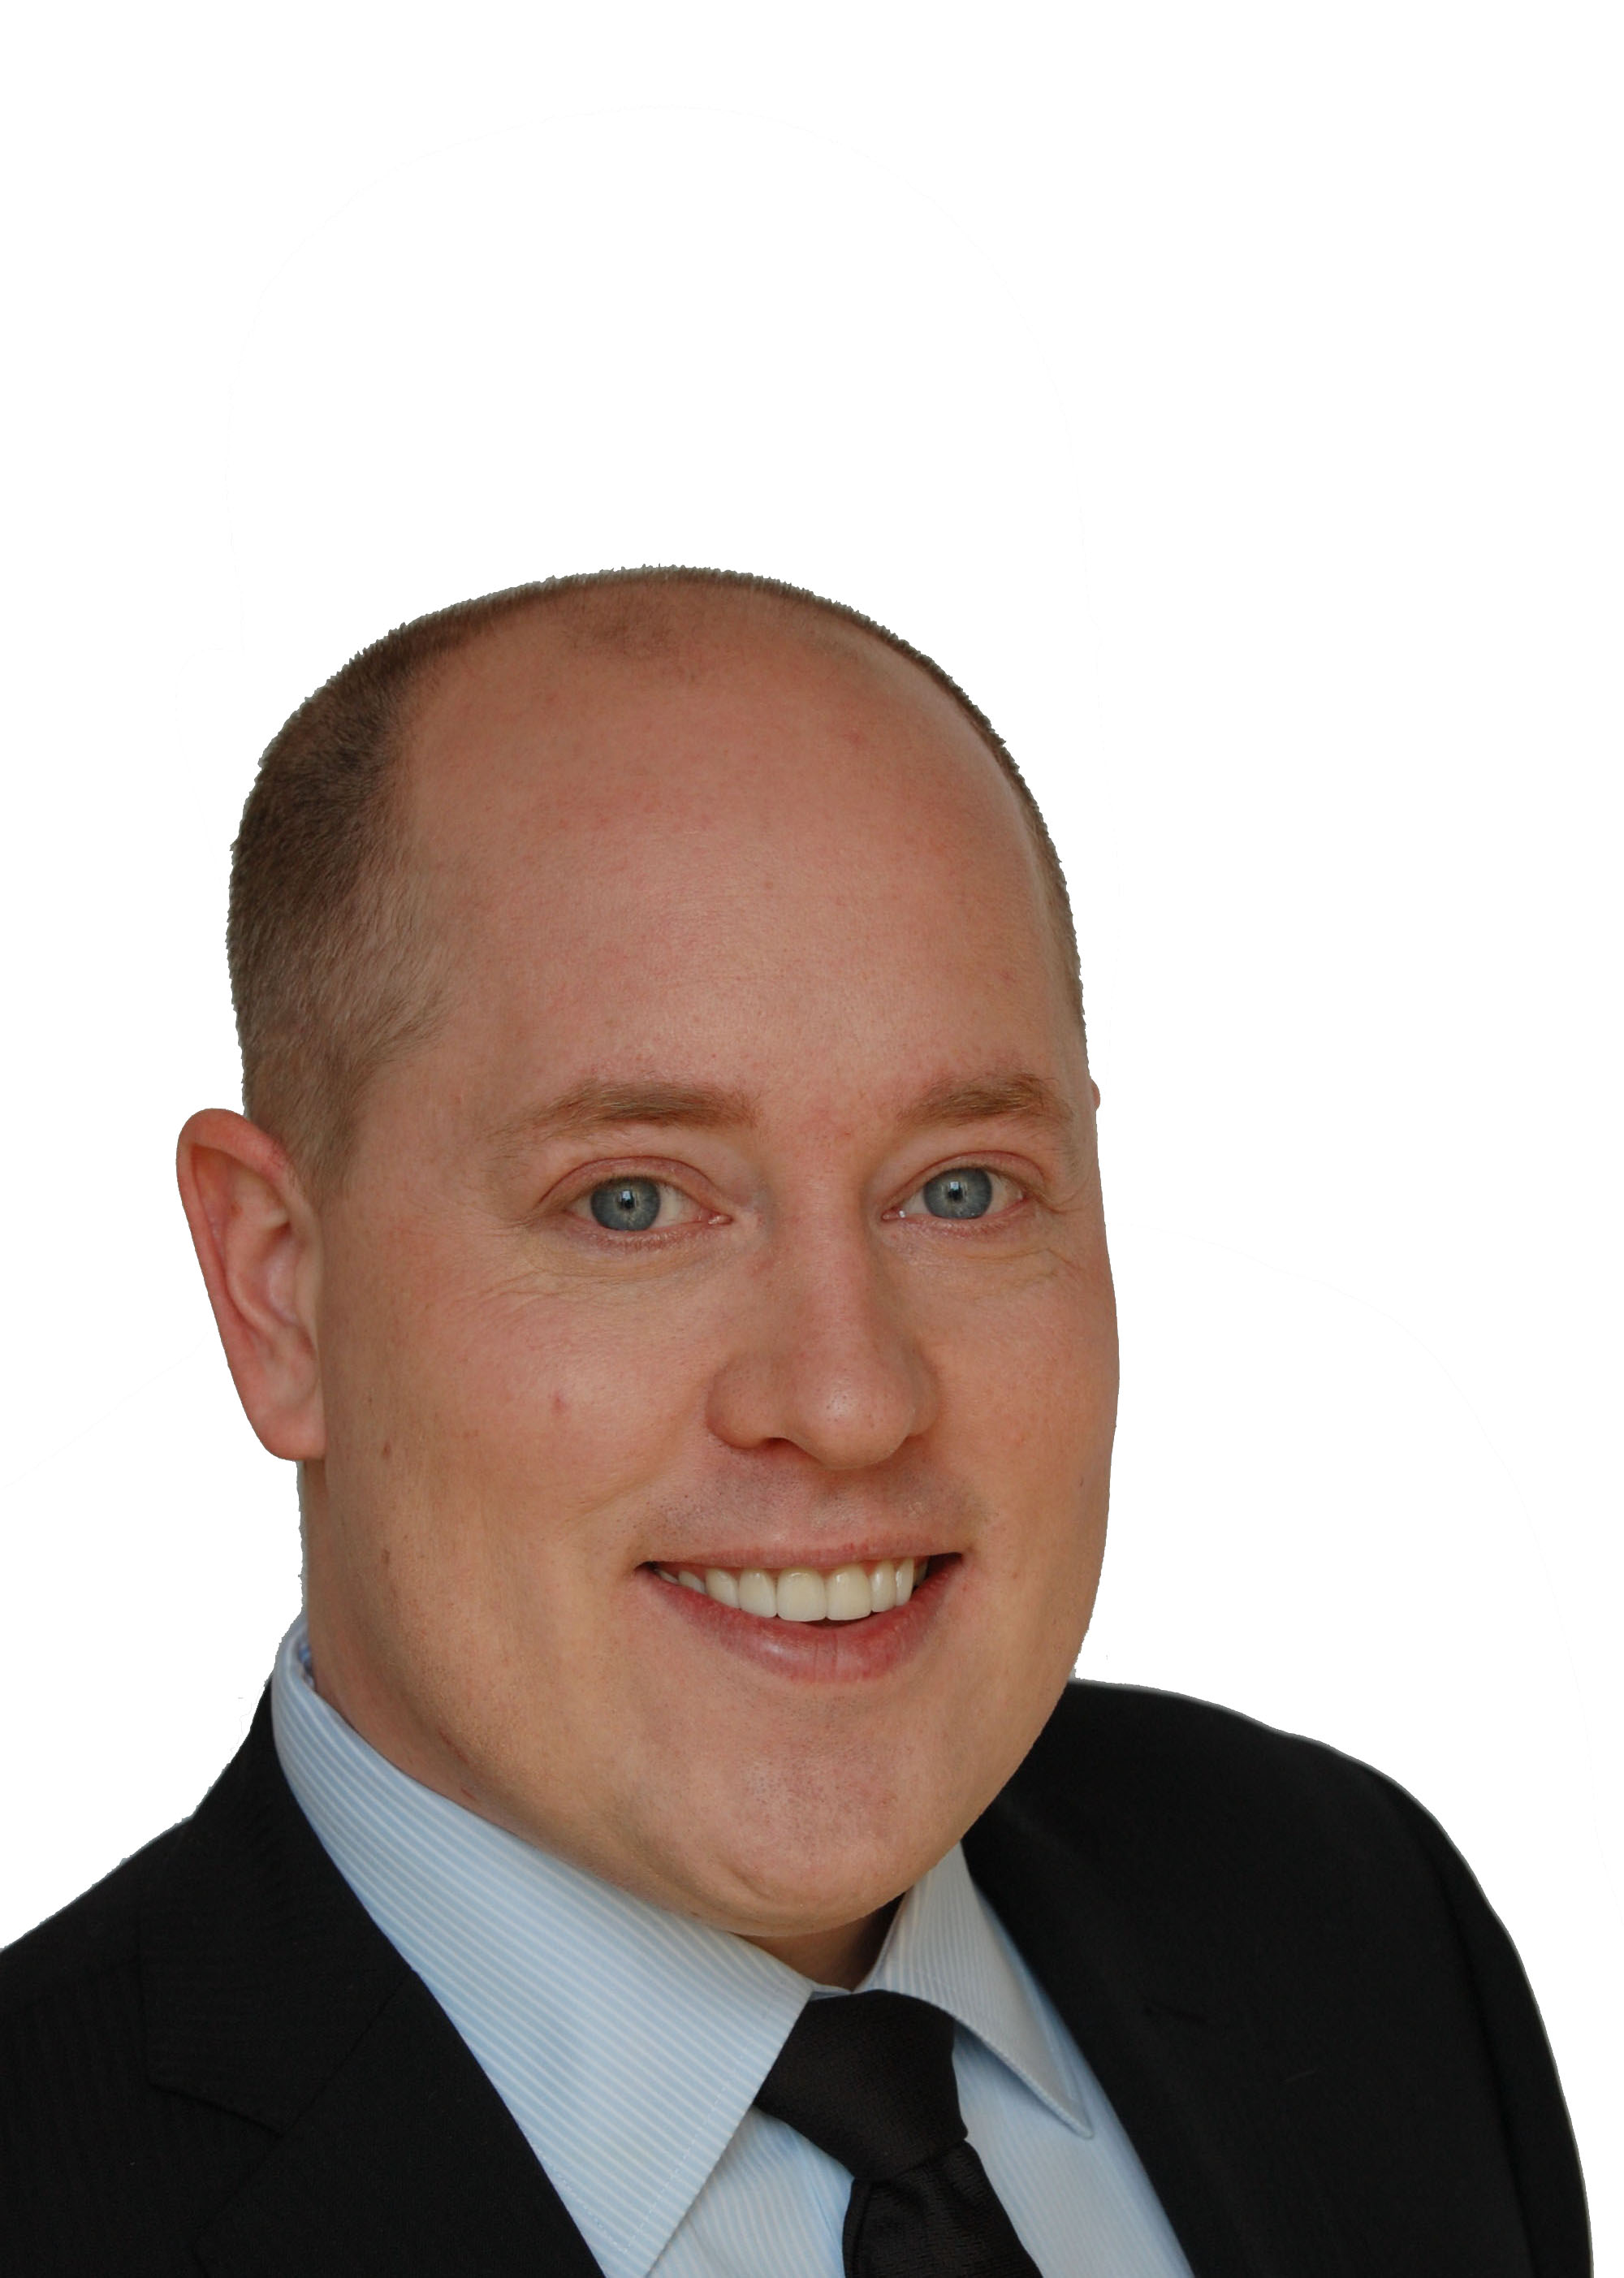 lincoln park plaza office il real estate agents coldwell banker ryan muehling